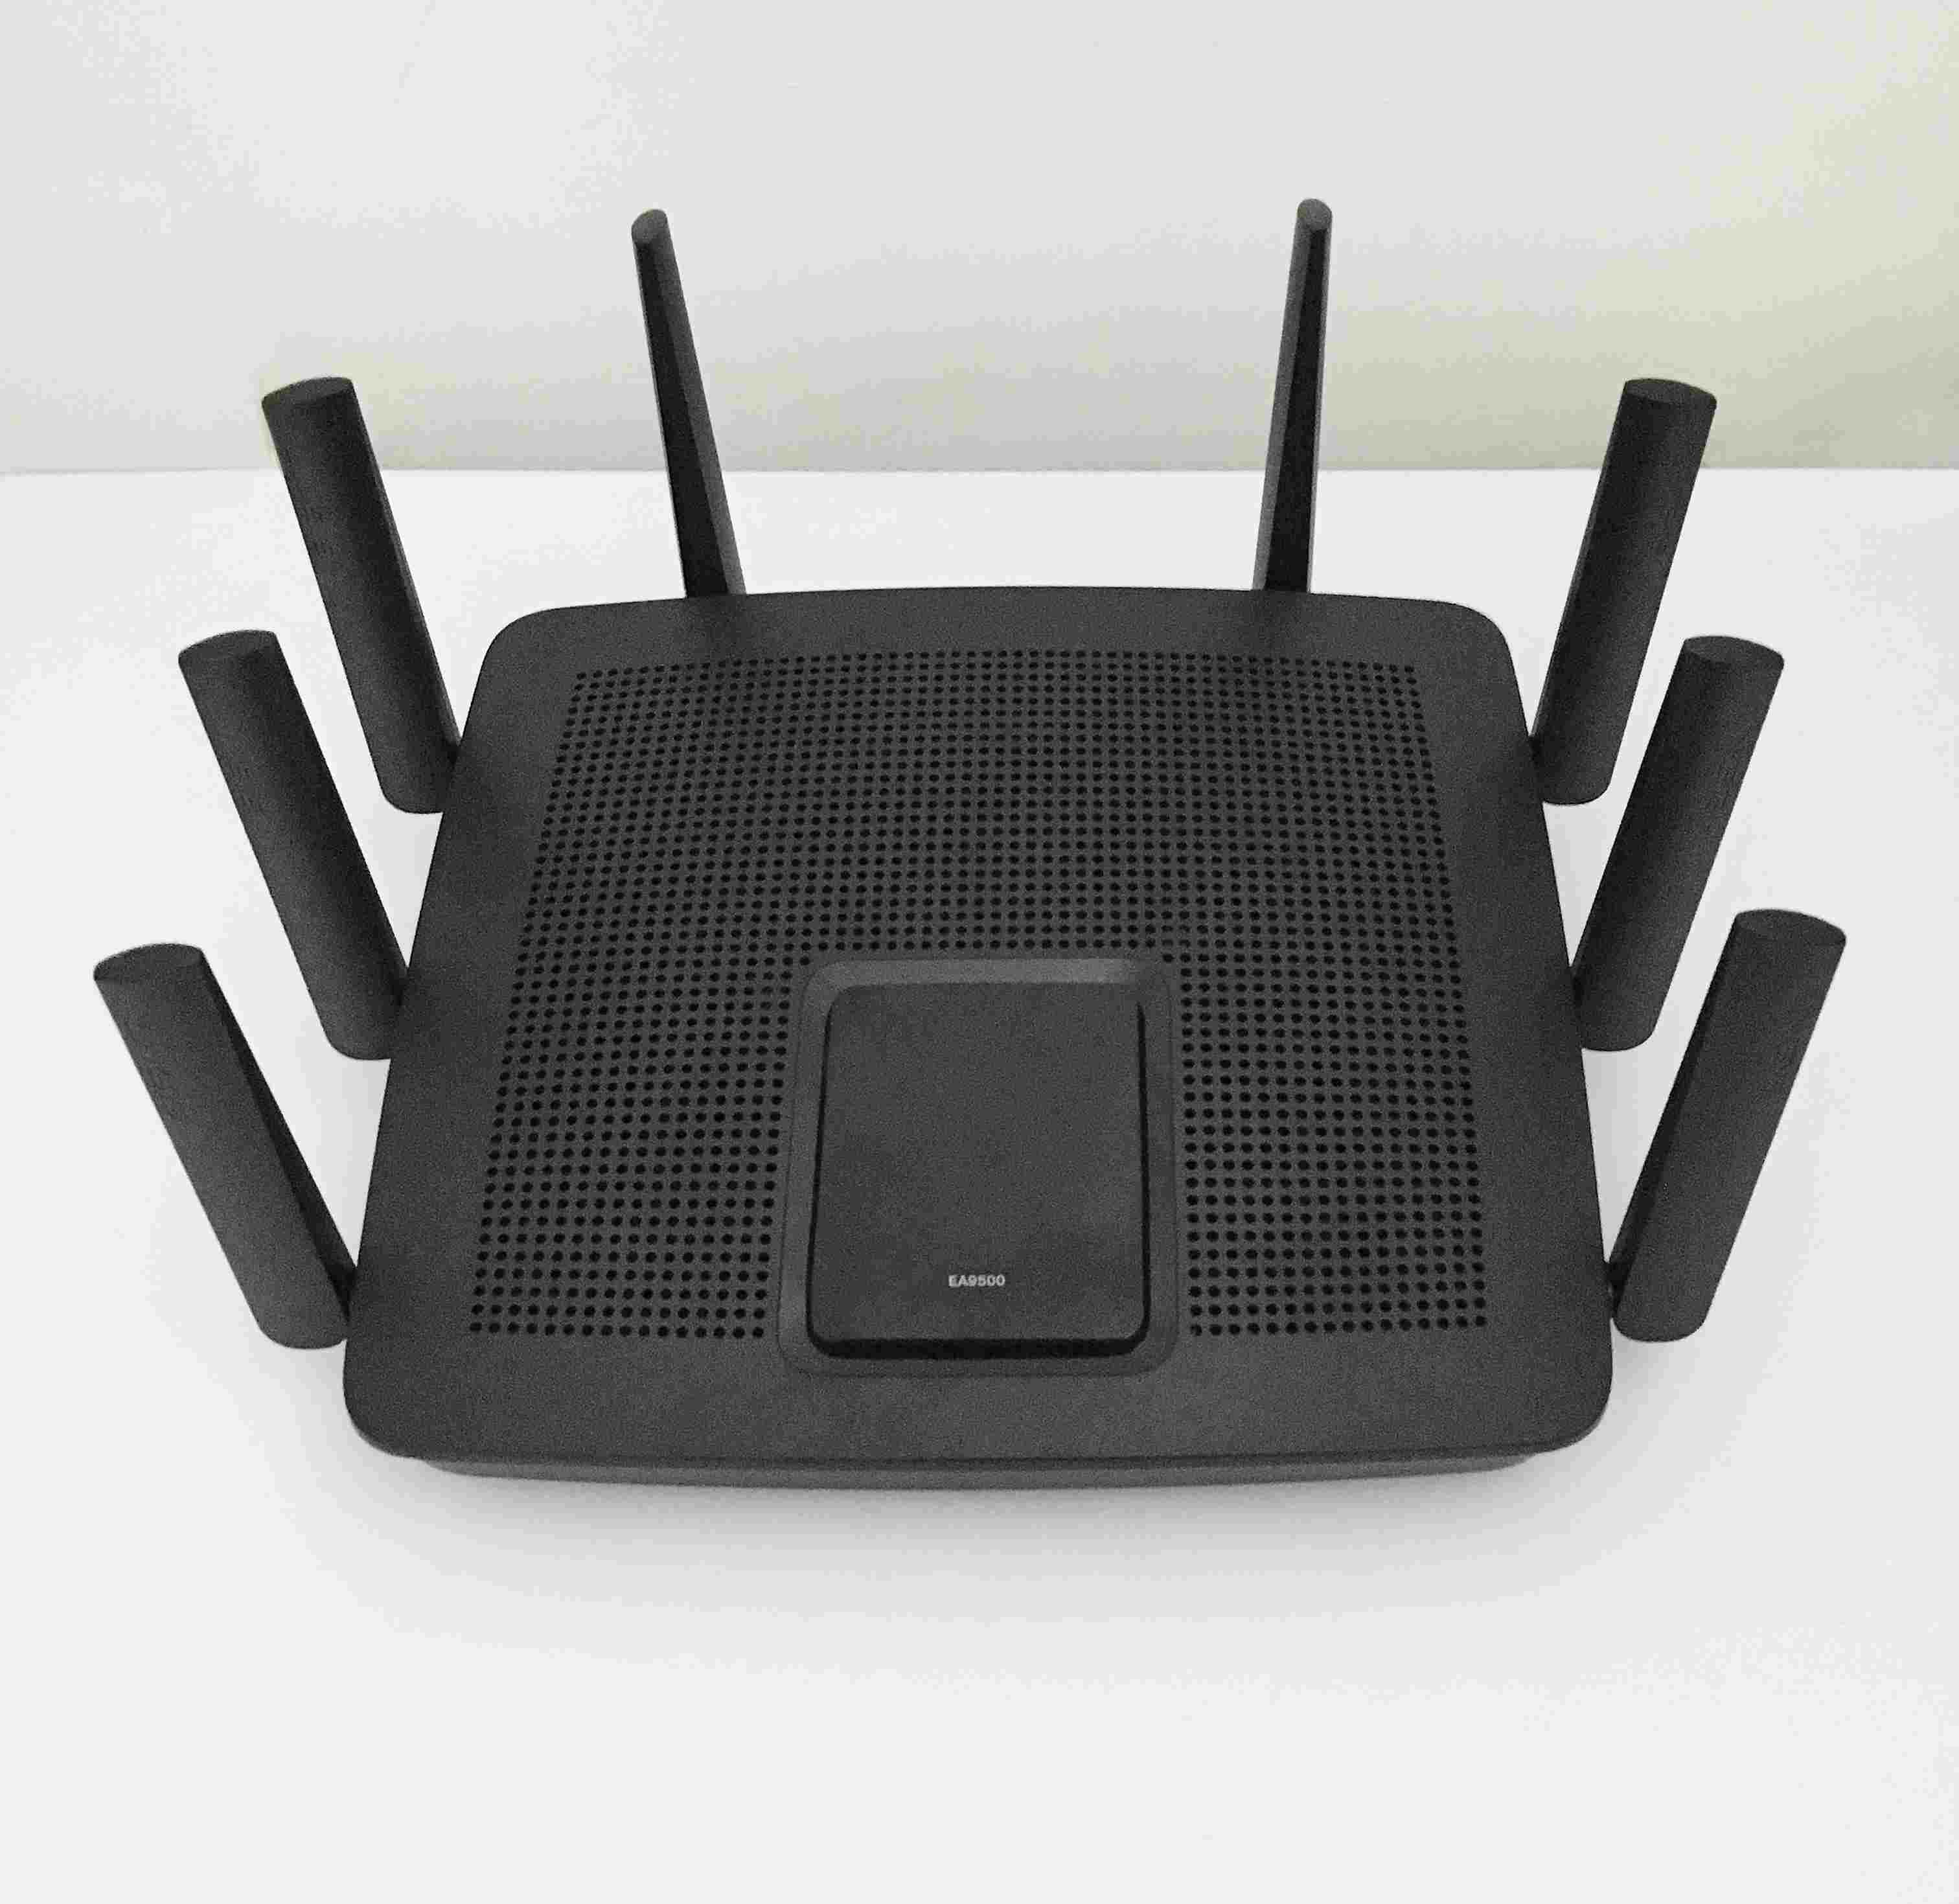 The 7 Best Linksys Routers of 2019